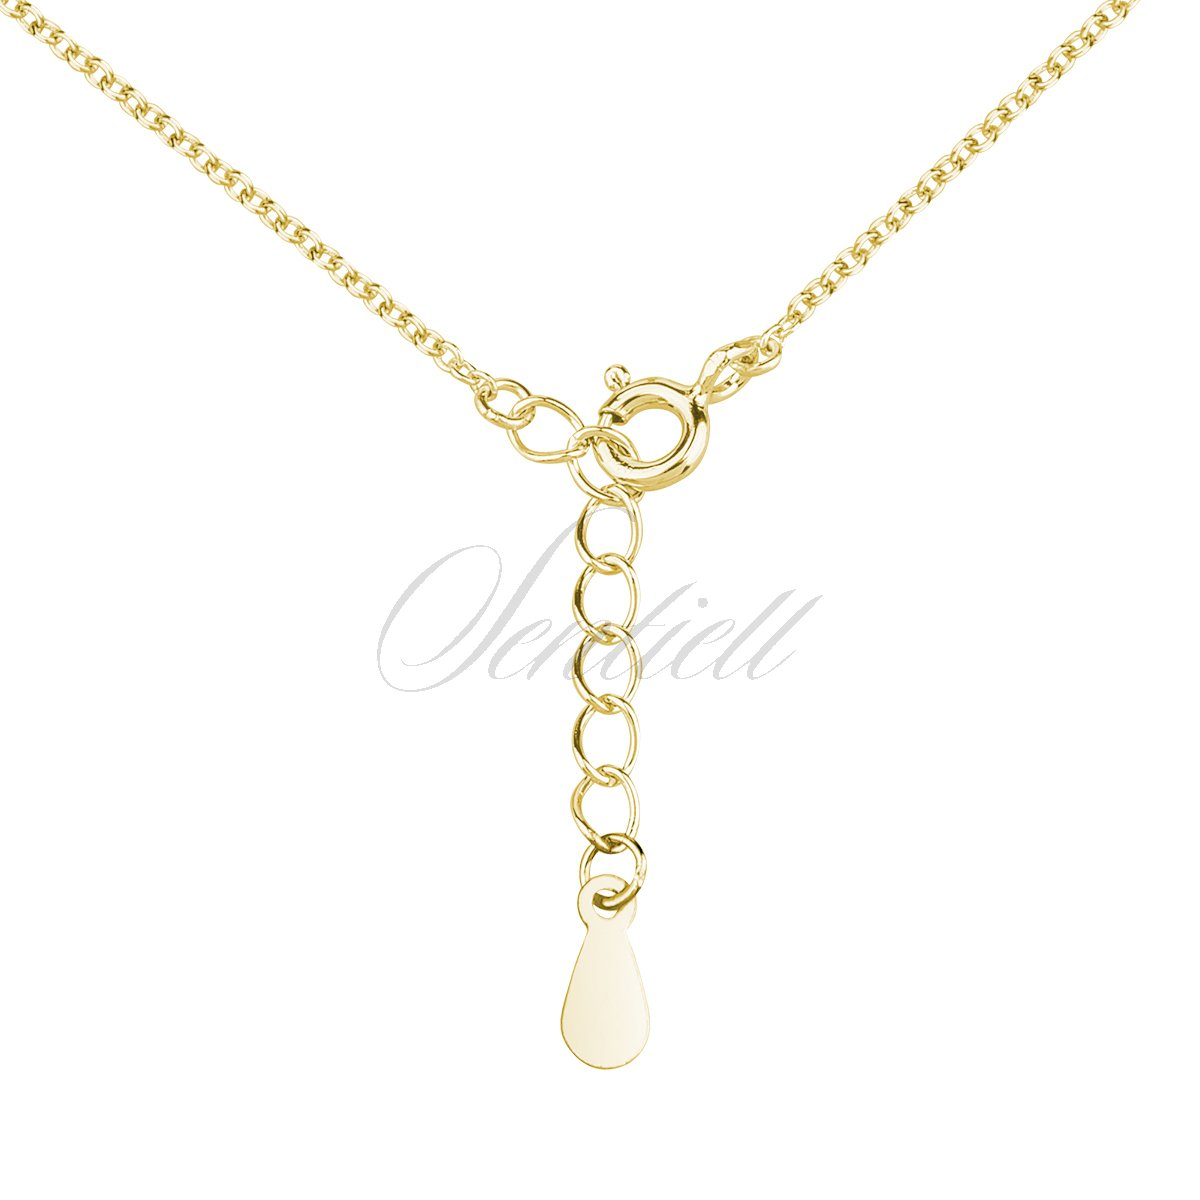 Jewels Obsession Christmas Ornament Necklace 14K Yellow Gold-plated 925 Silver Christmas Ornament Pendant with 16 Necklace